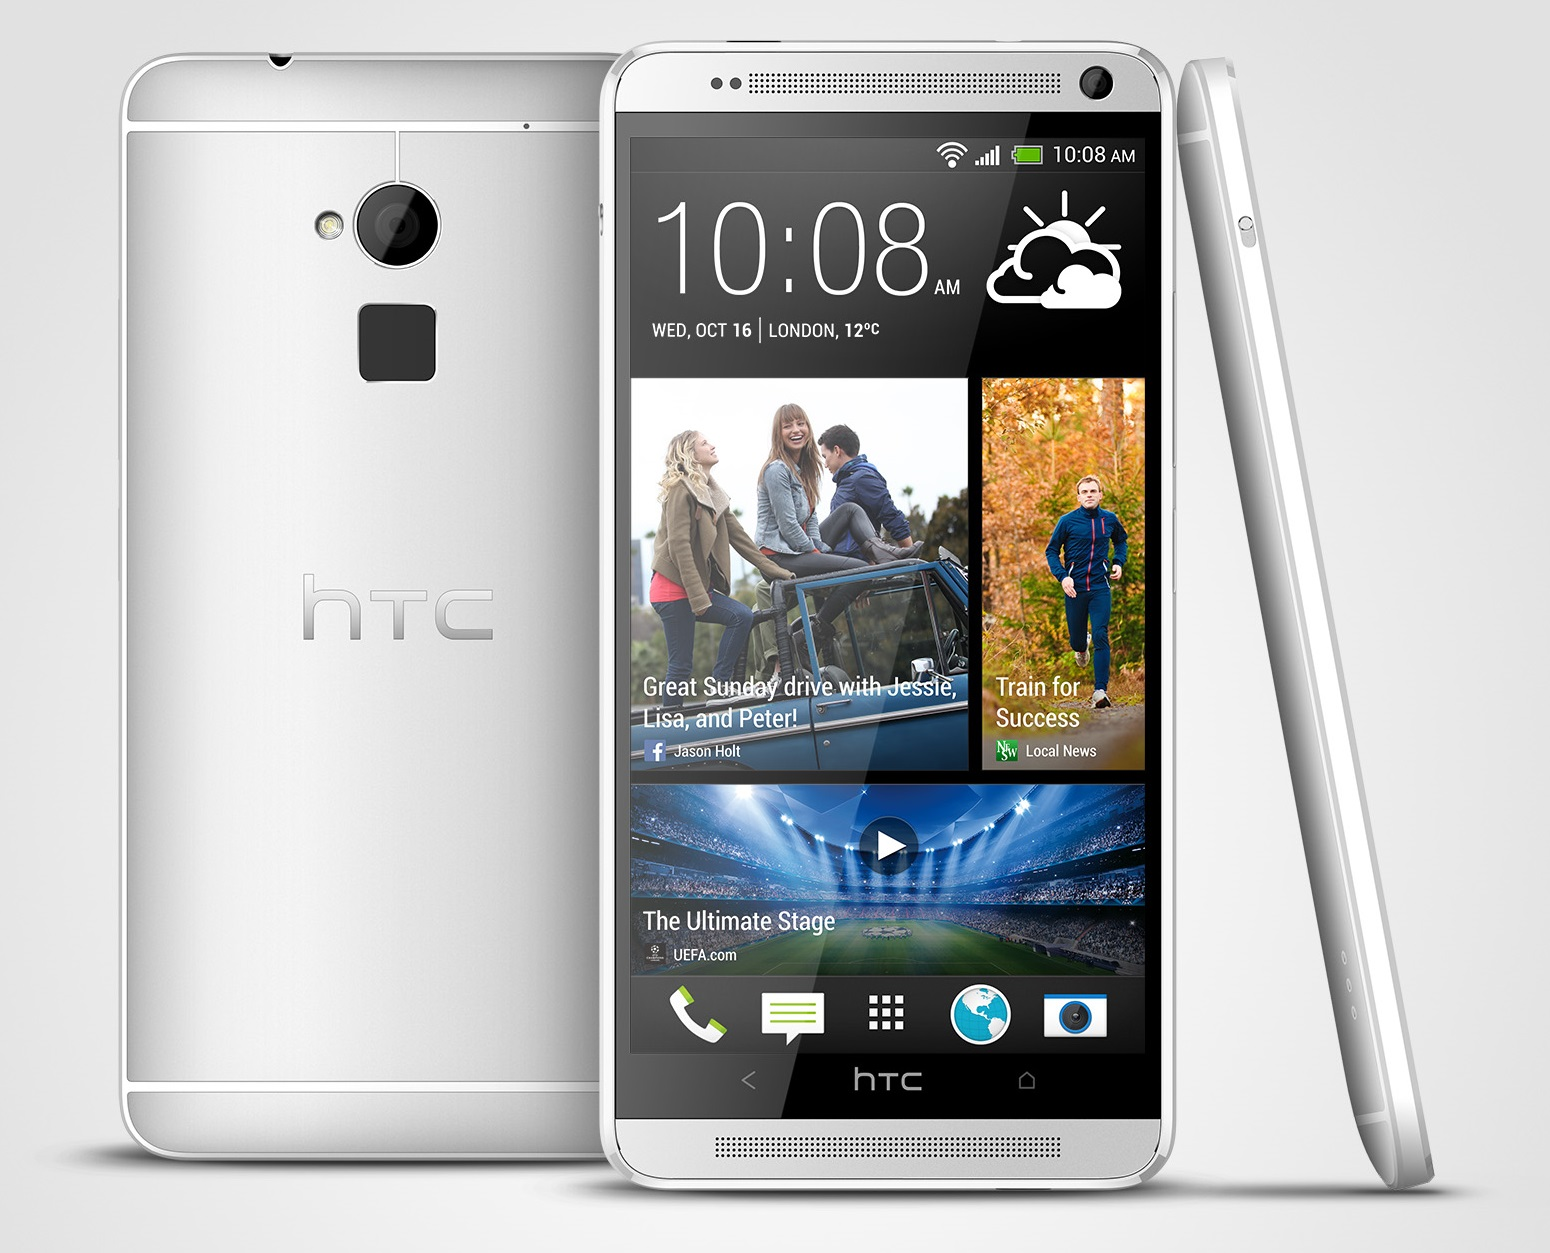 HTC One max Glacial Silver 3V HTC introduces One max with fingerprint sensor, 5.9 inch display and Sense 5.5